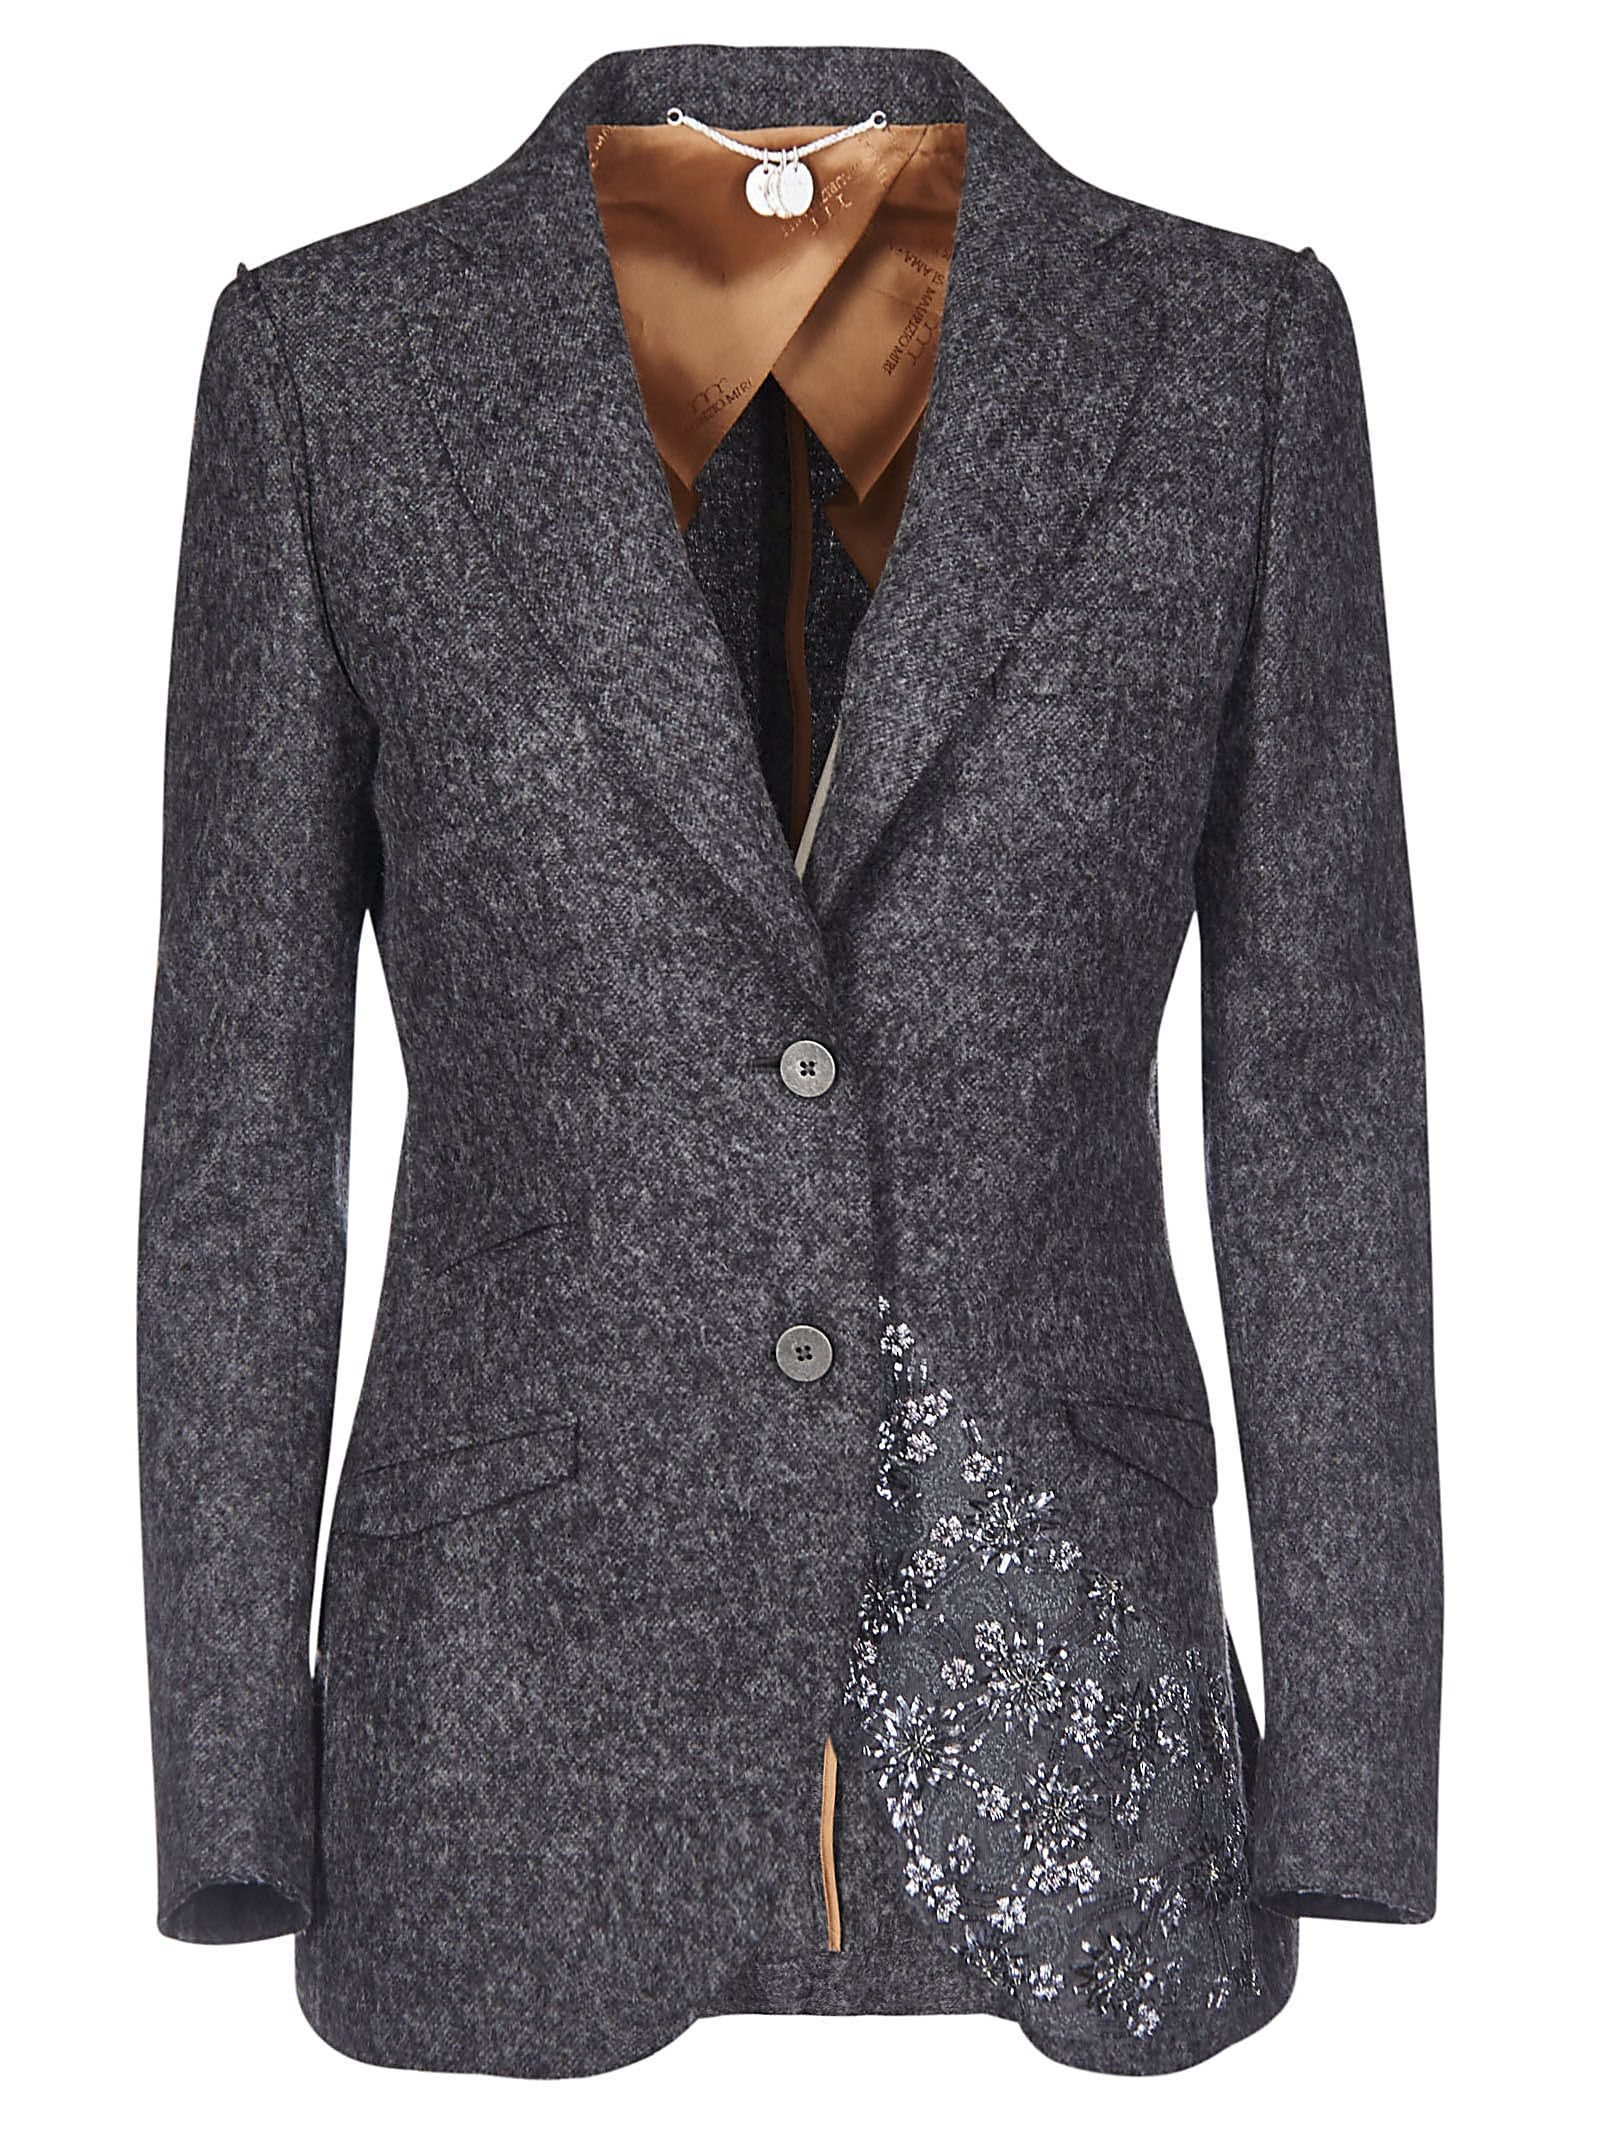 Floral-Detailed Blazer, Grigio